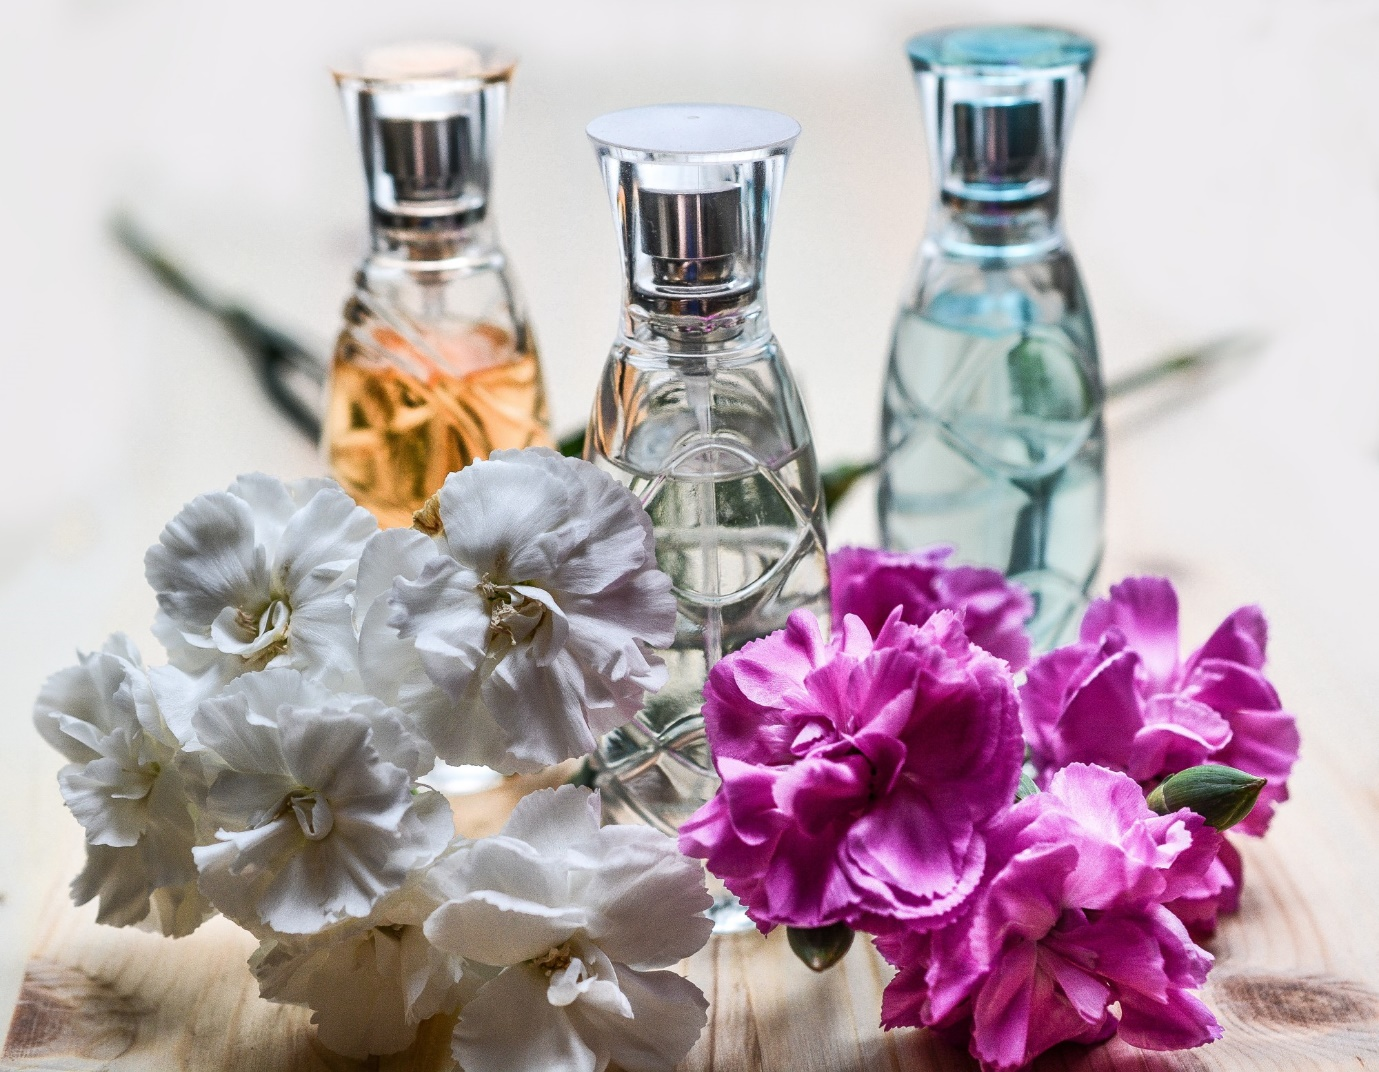 Find the Best Types of Perfume